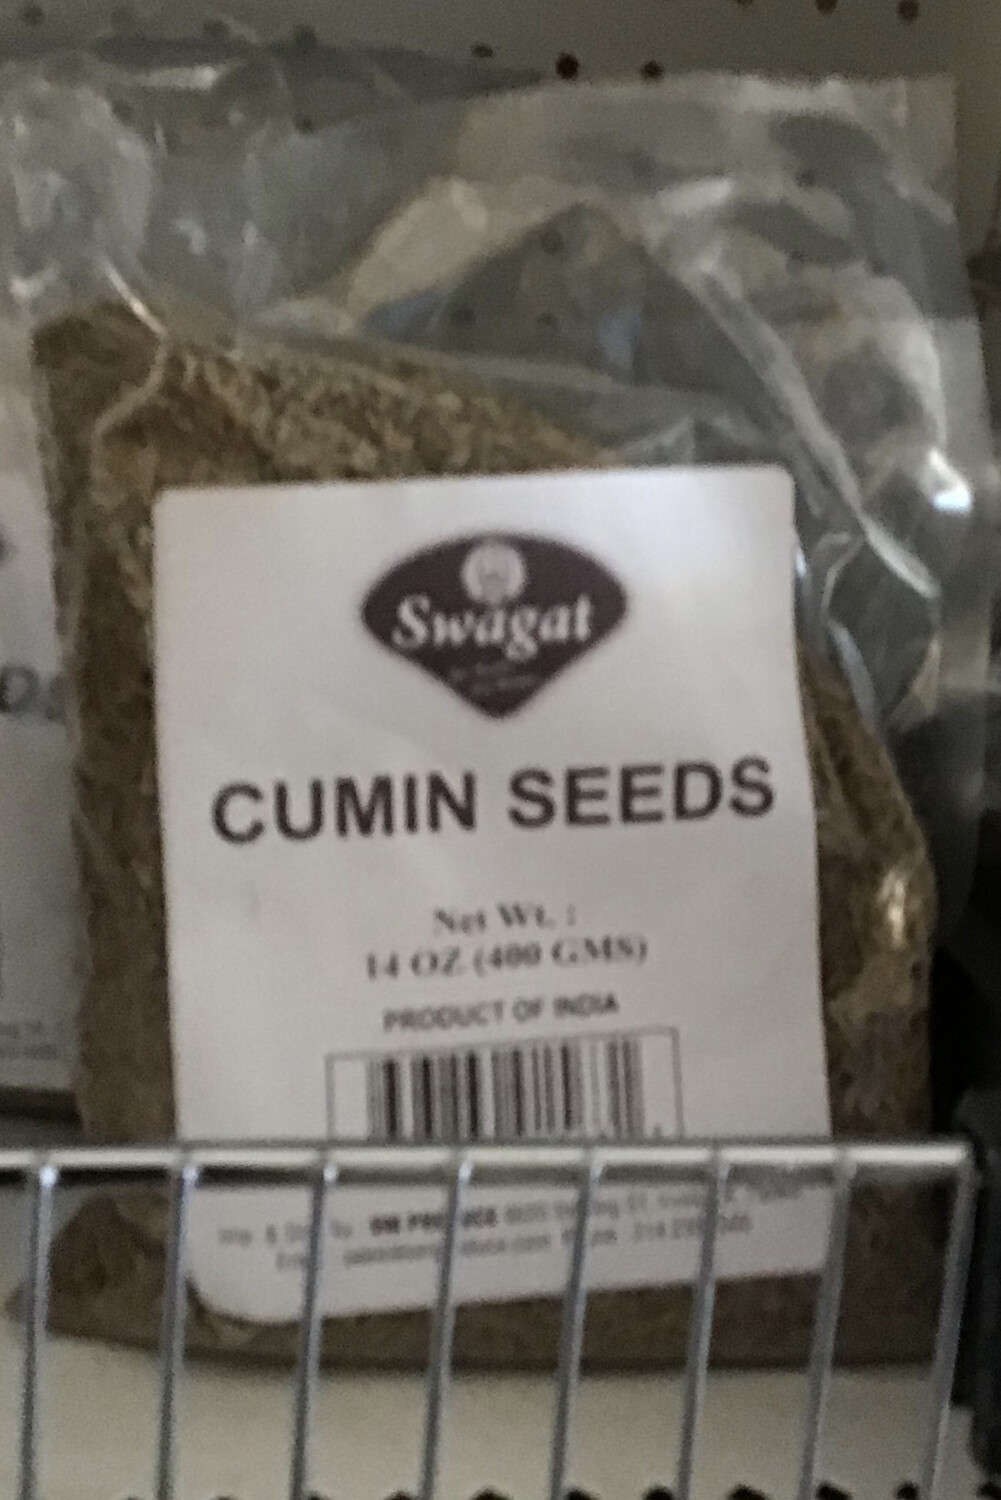 SWAGAT CUMIN SEEDS 400gm